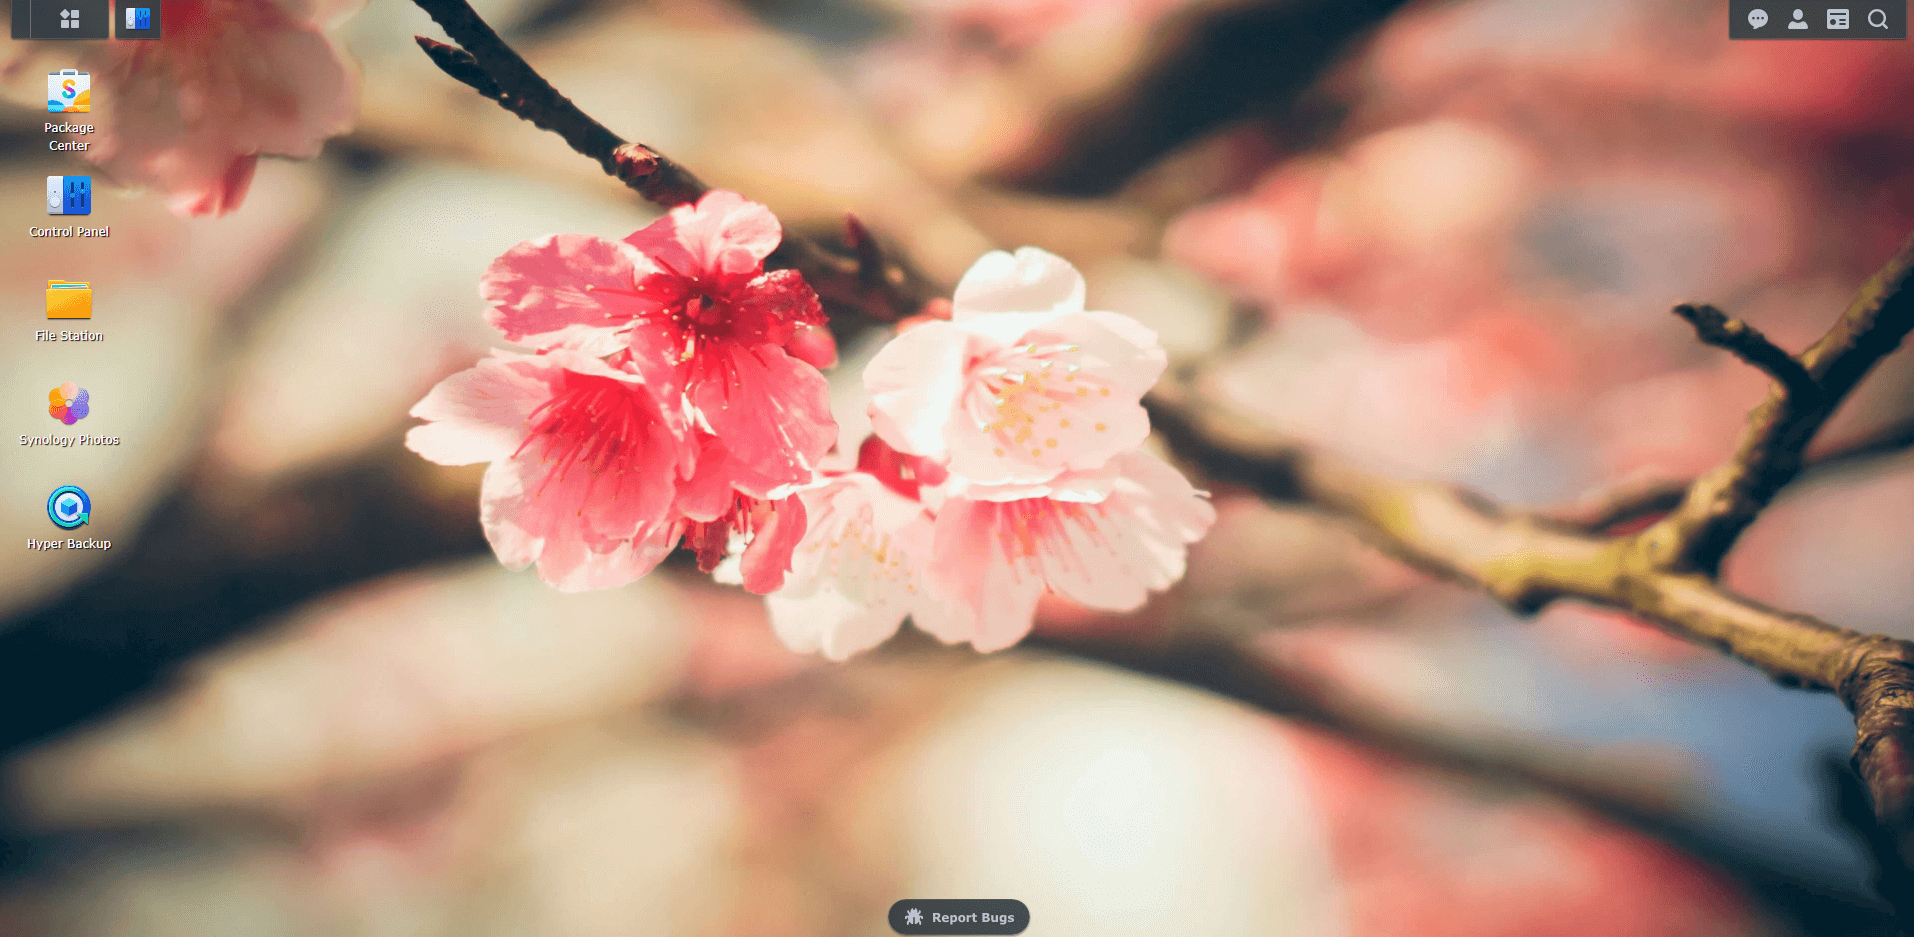 6 Synology Spring Wallpapers